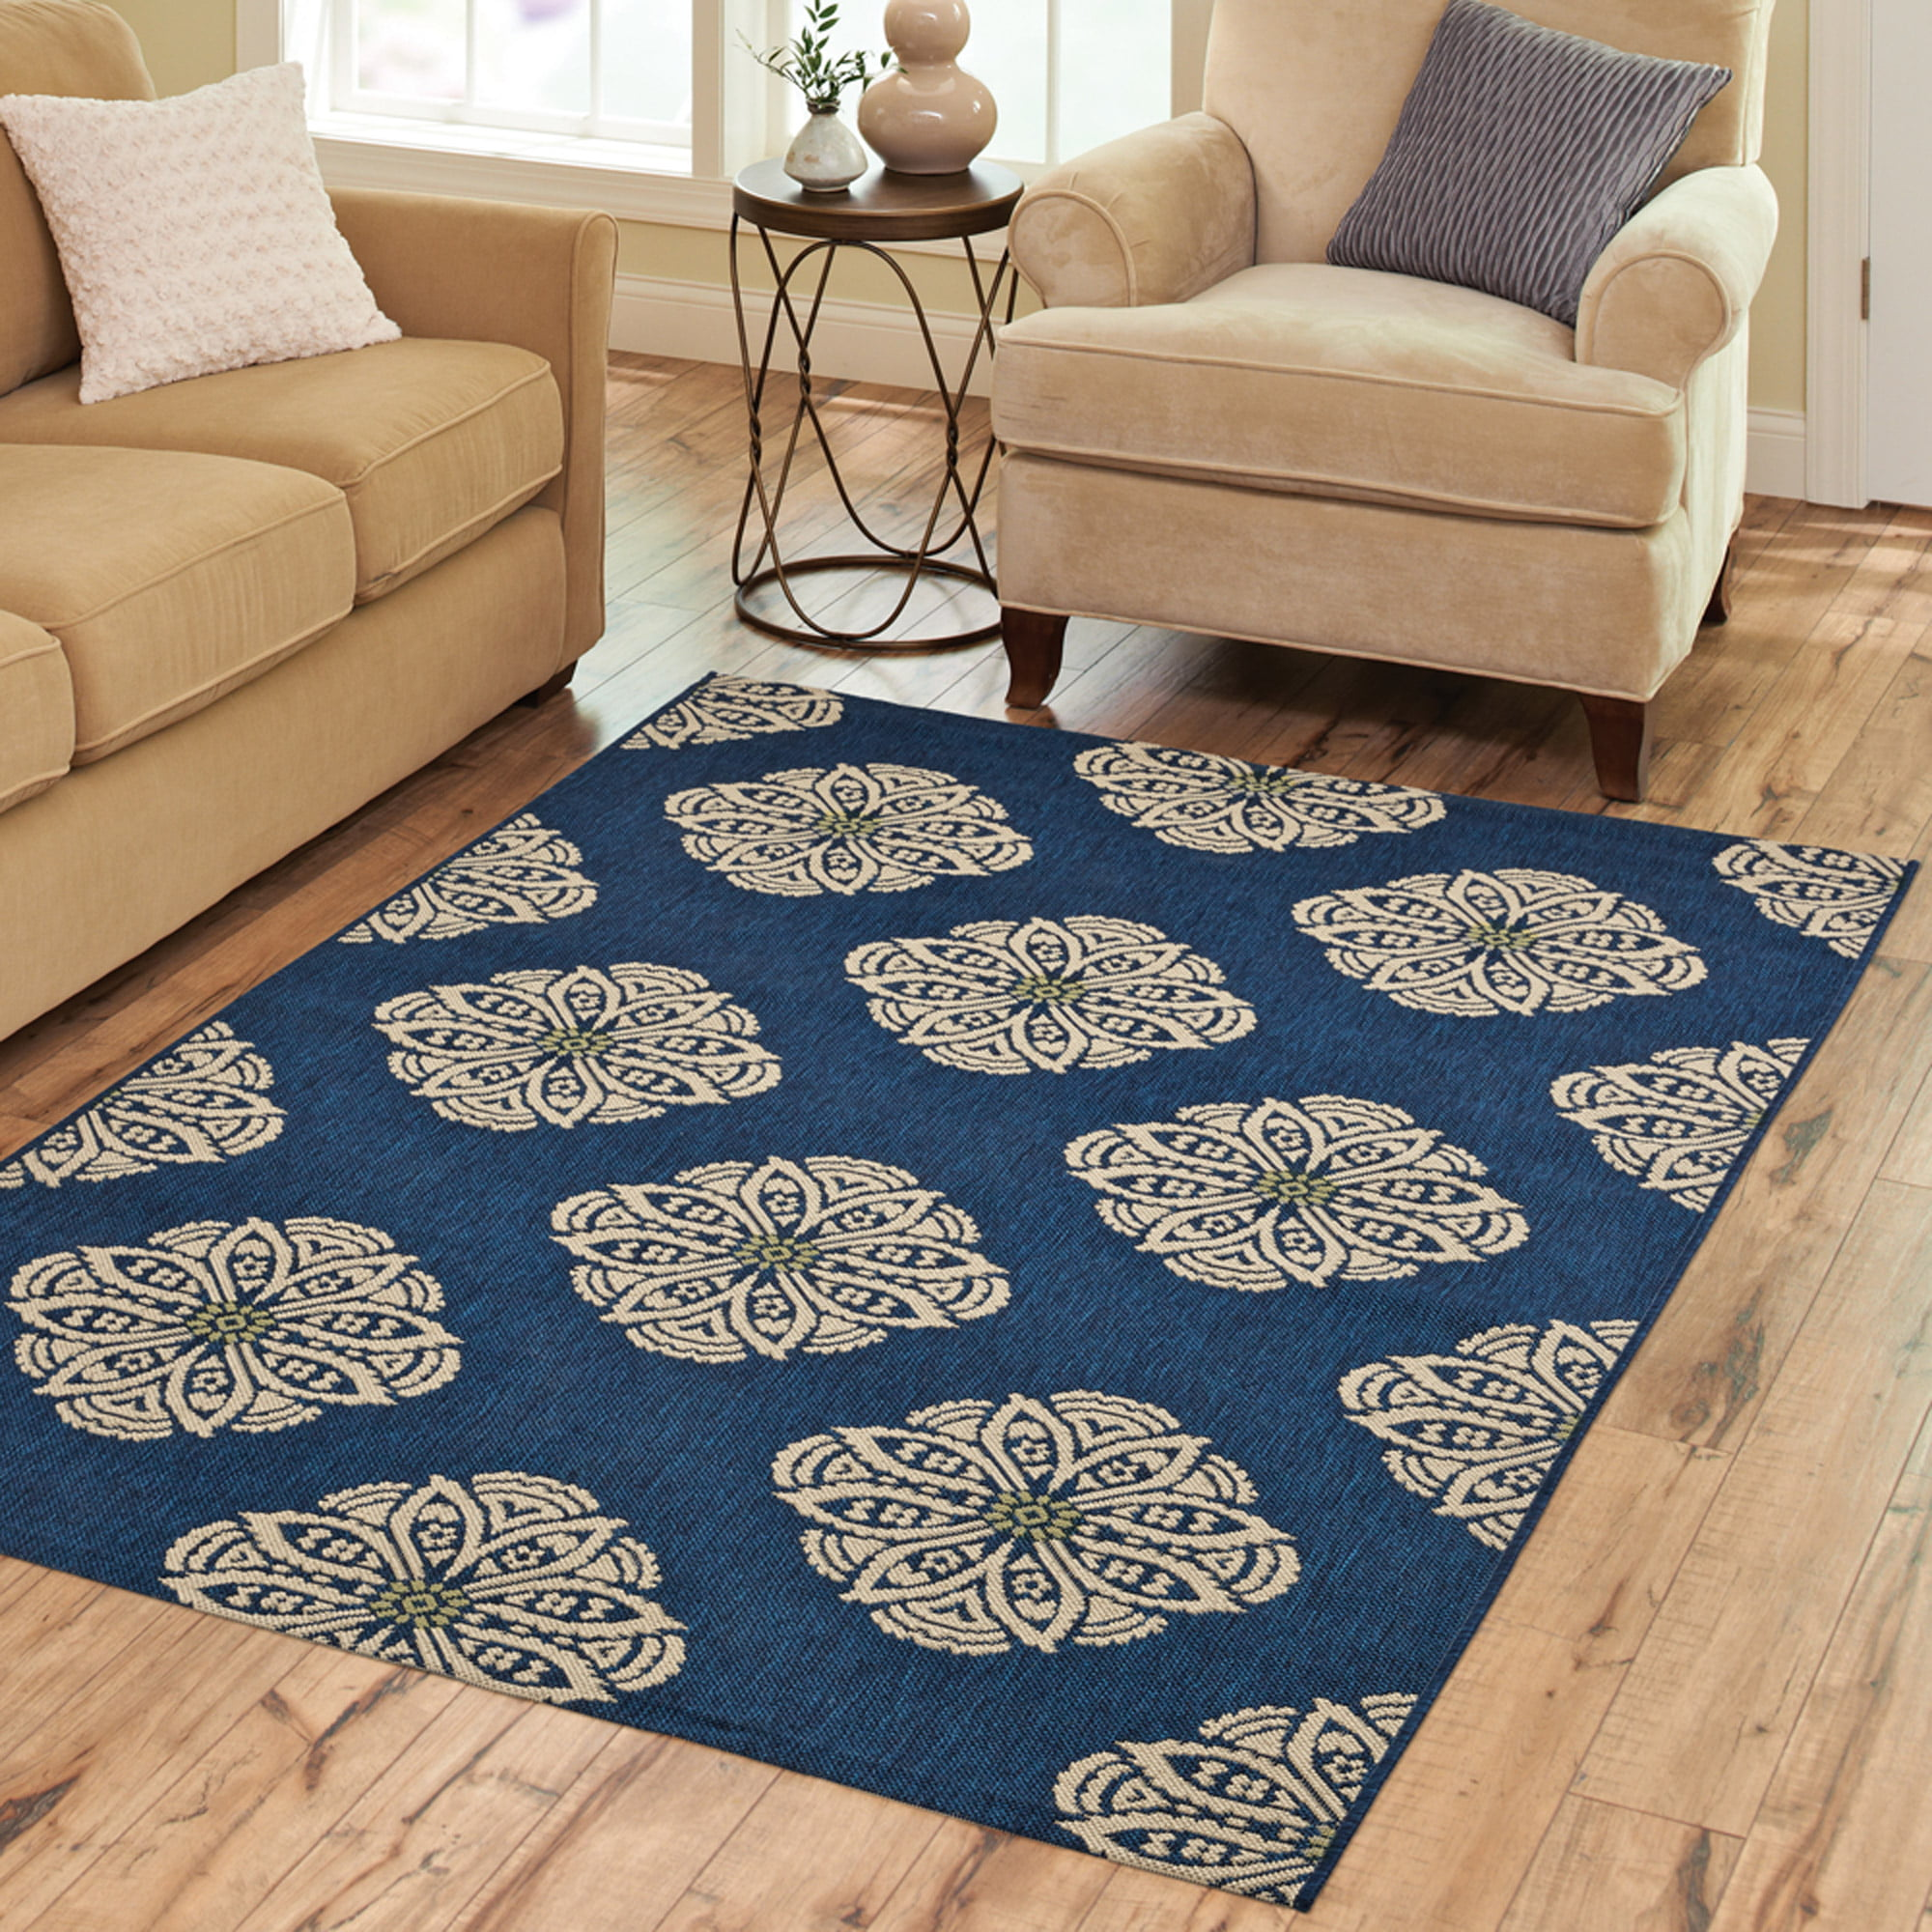 rug to white indoor flooring outdoor berber backing with rubber patio your rugs things tiles for mats remnants consider laminate installing carpet before